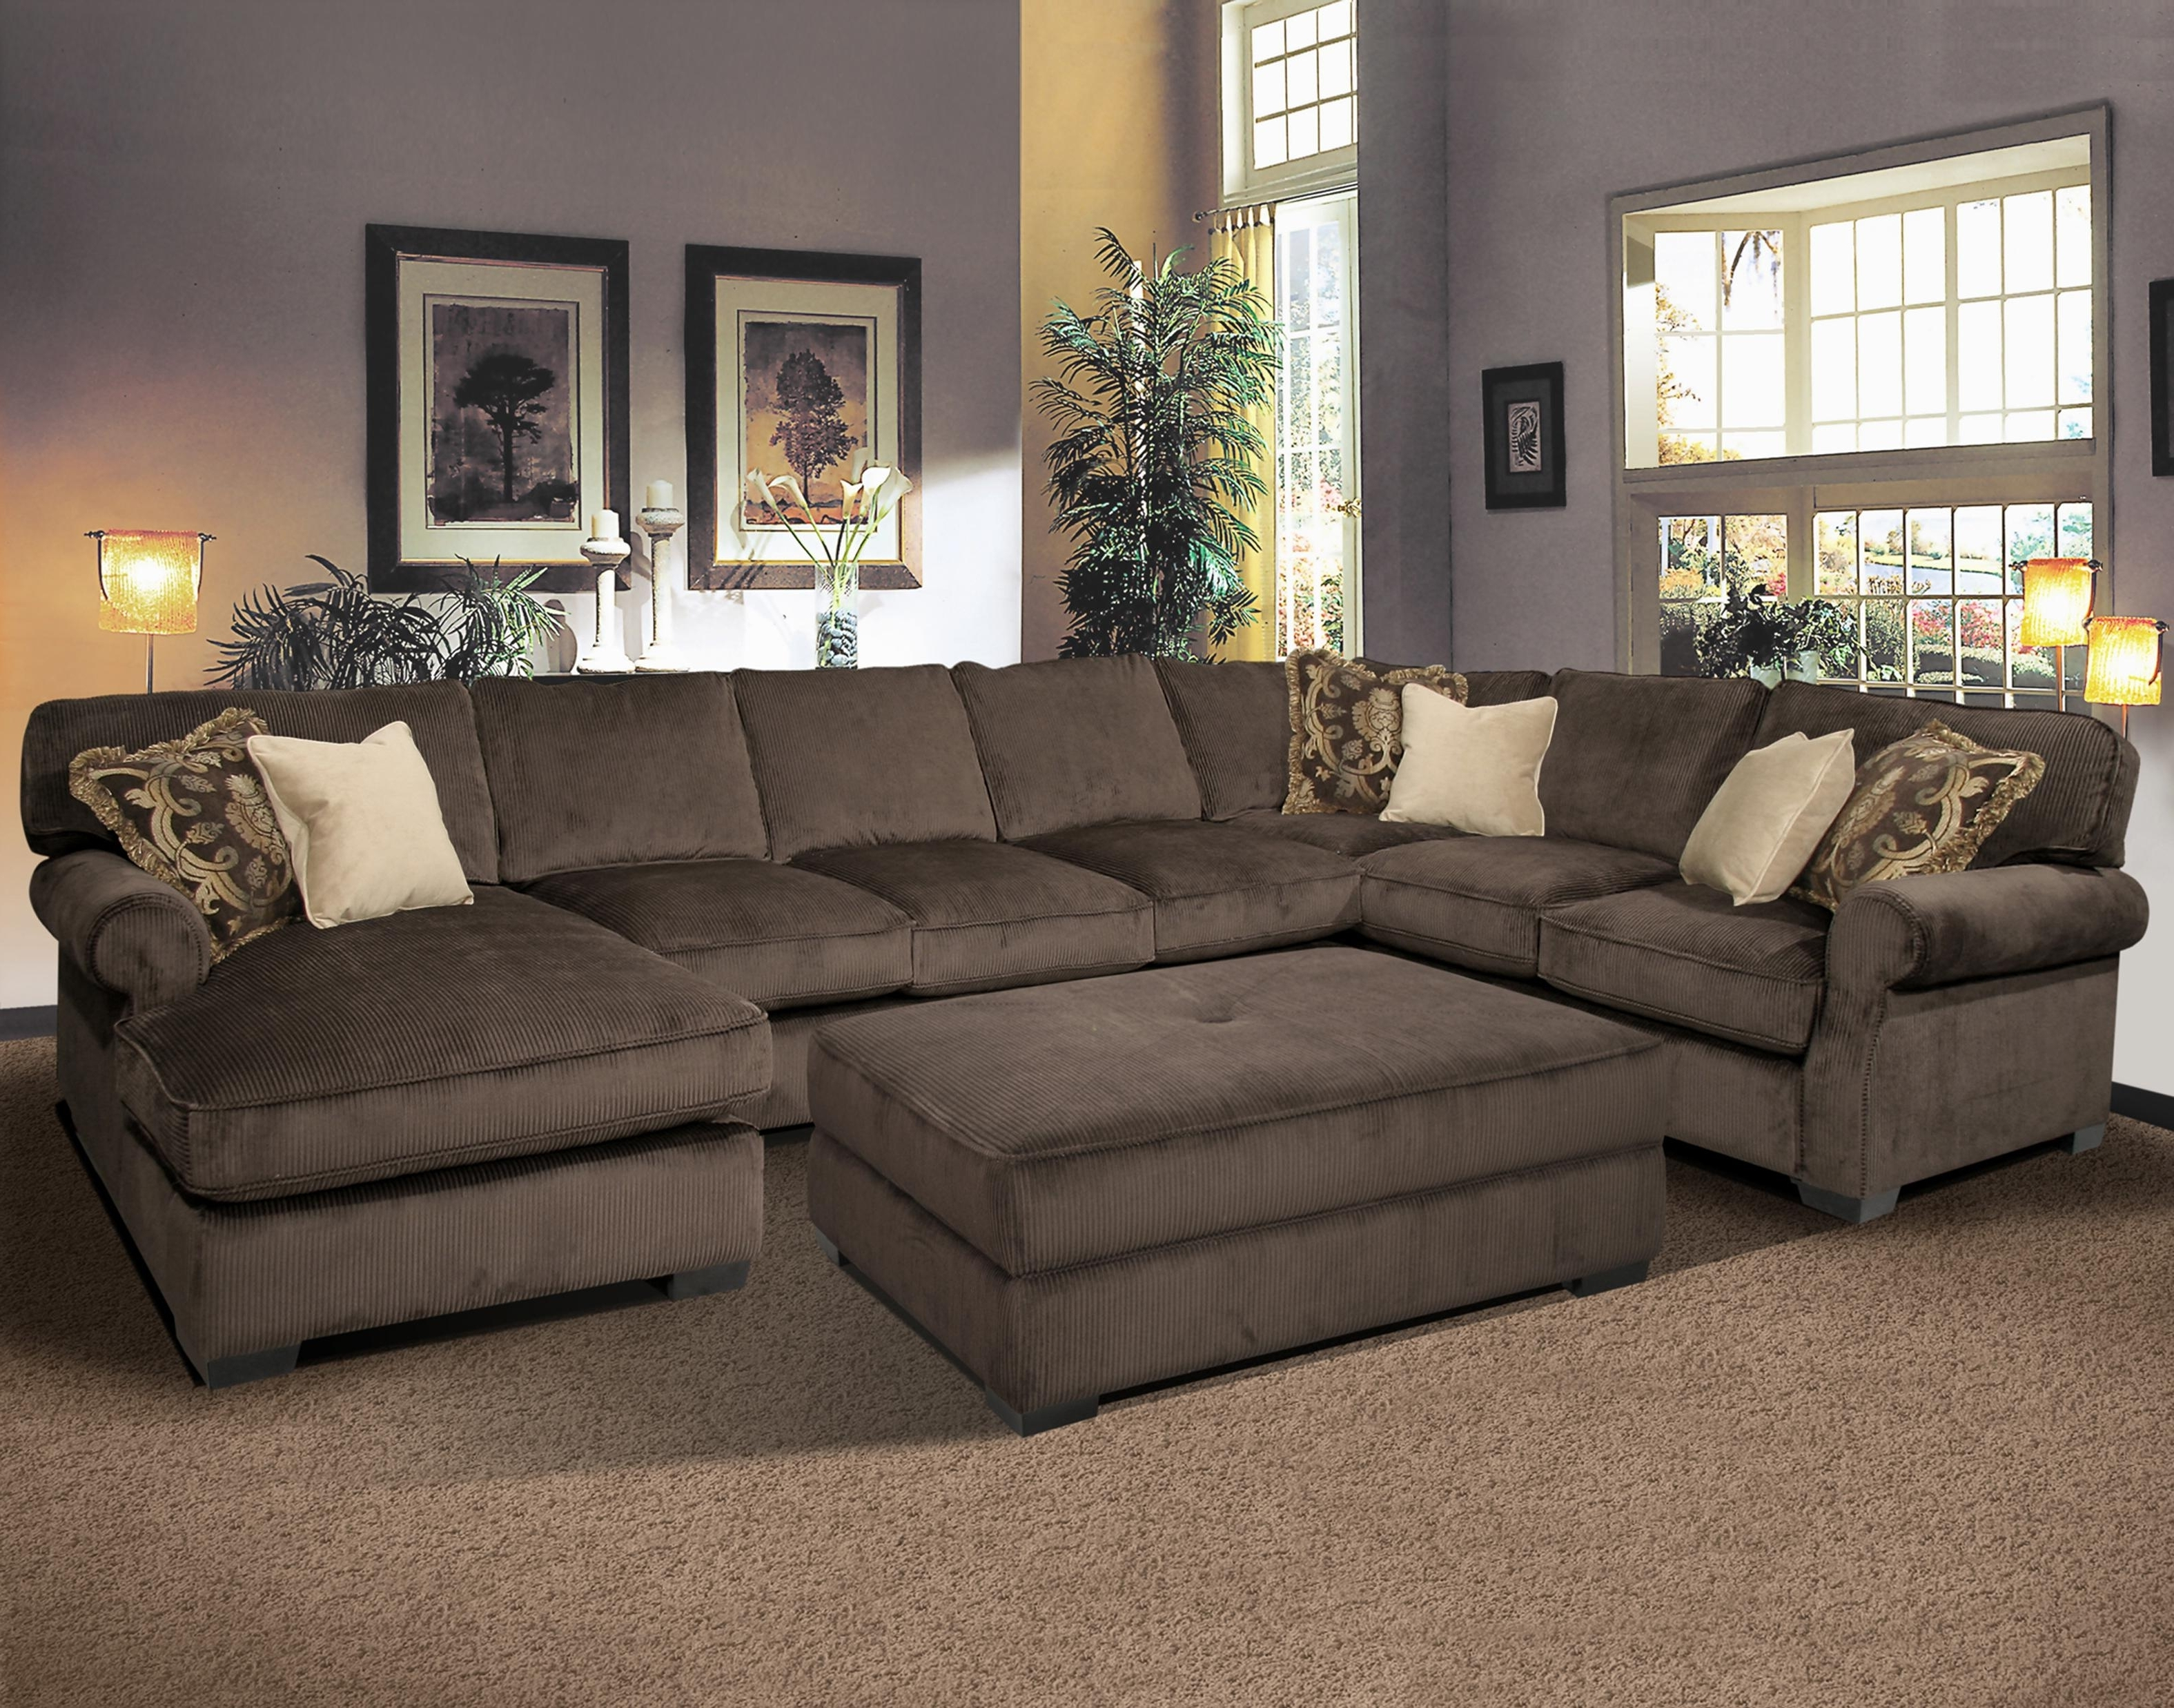 Most Recent Best Zane Sectional Sofa For Sofas Tulsa Ok With Decor Home Sofas In Tulsa Sectional Sofas (Gallery 2 of 20)